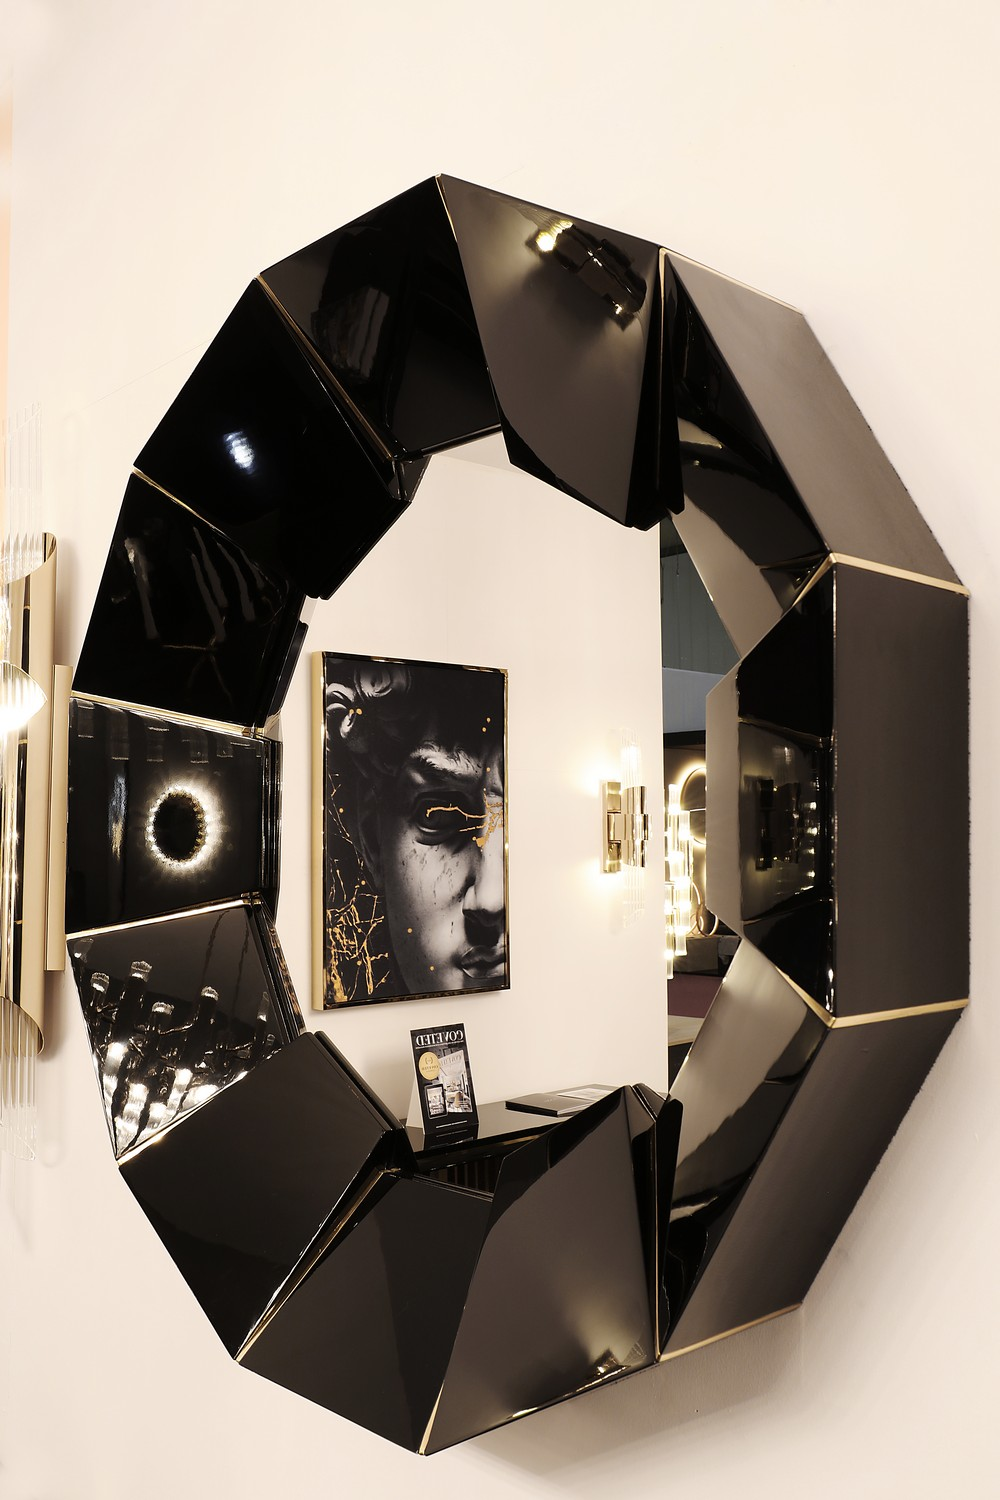 Home Decoration Ideas 10 Ostentatious Mirrors for a Unique Aesthetic 5 home decoration ideas Home Decoration Ideas: 10 Ostentatious Mirrors for a Unique Aesthetic Home Decoration Ideas 10 Ostentatious Mirrors for a Unique Aesthetic 5